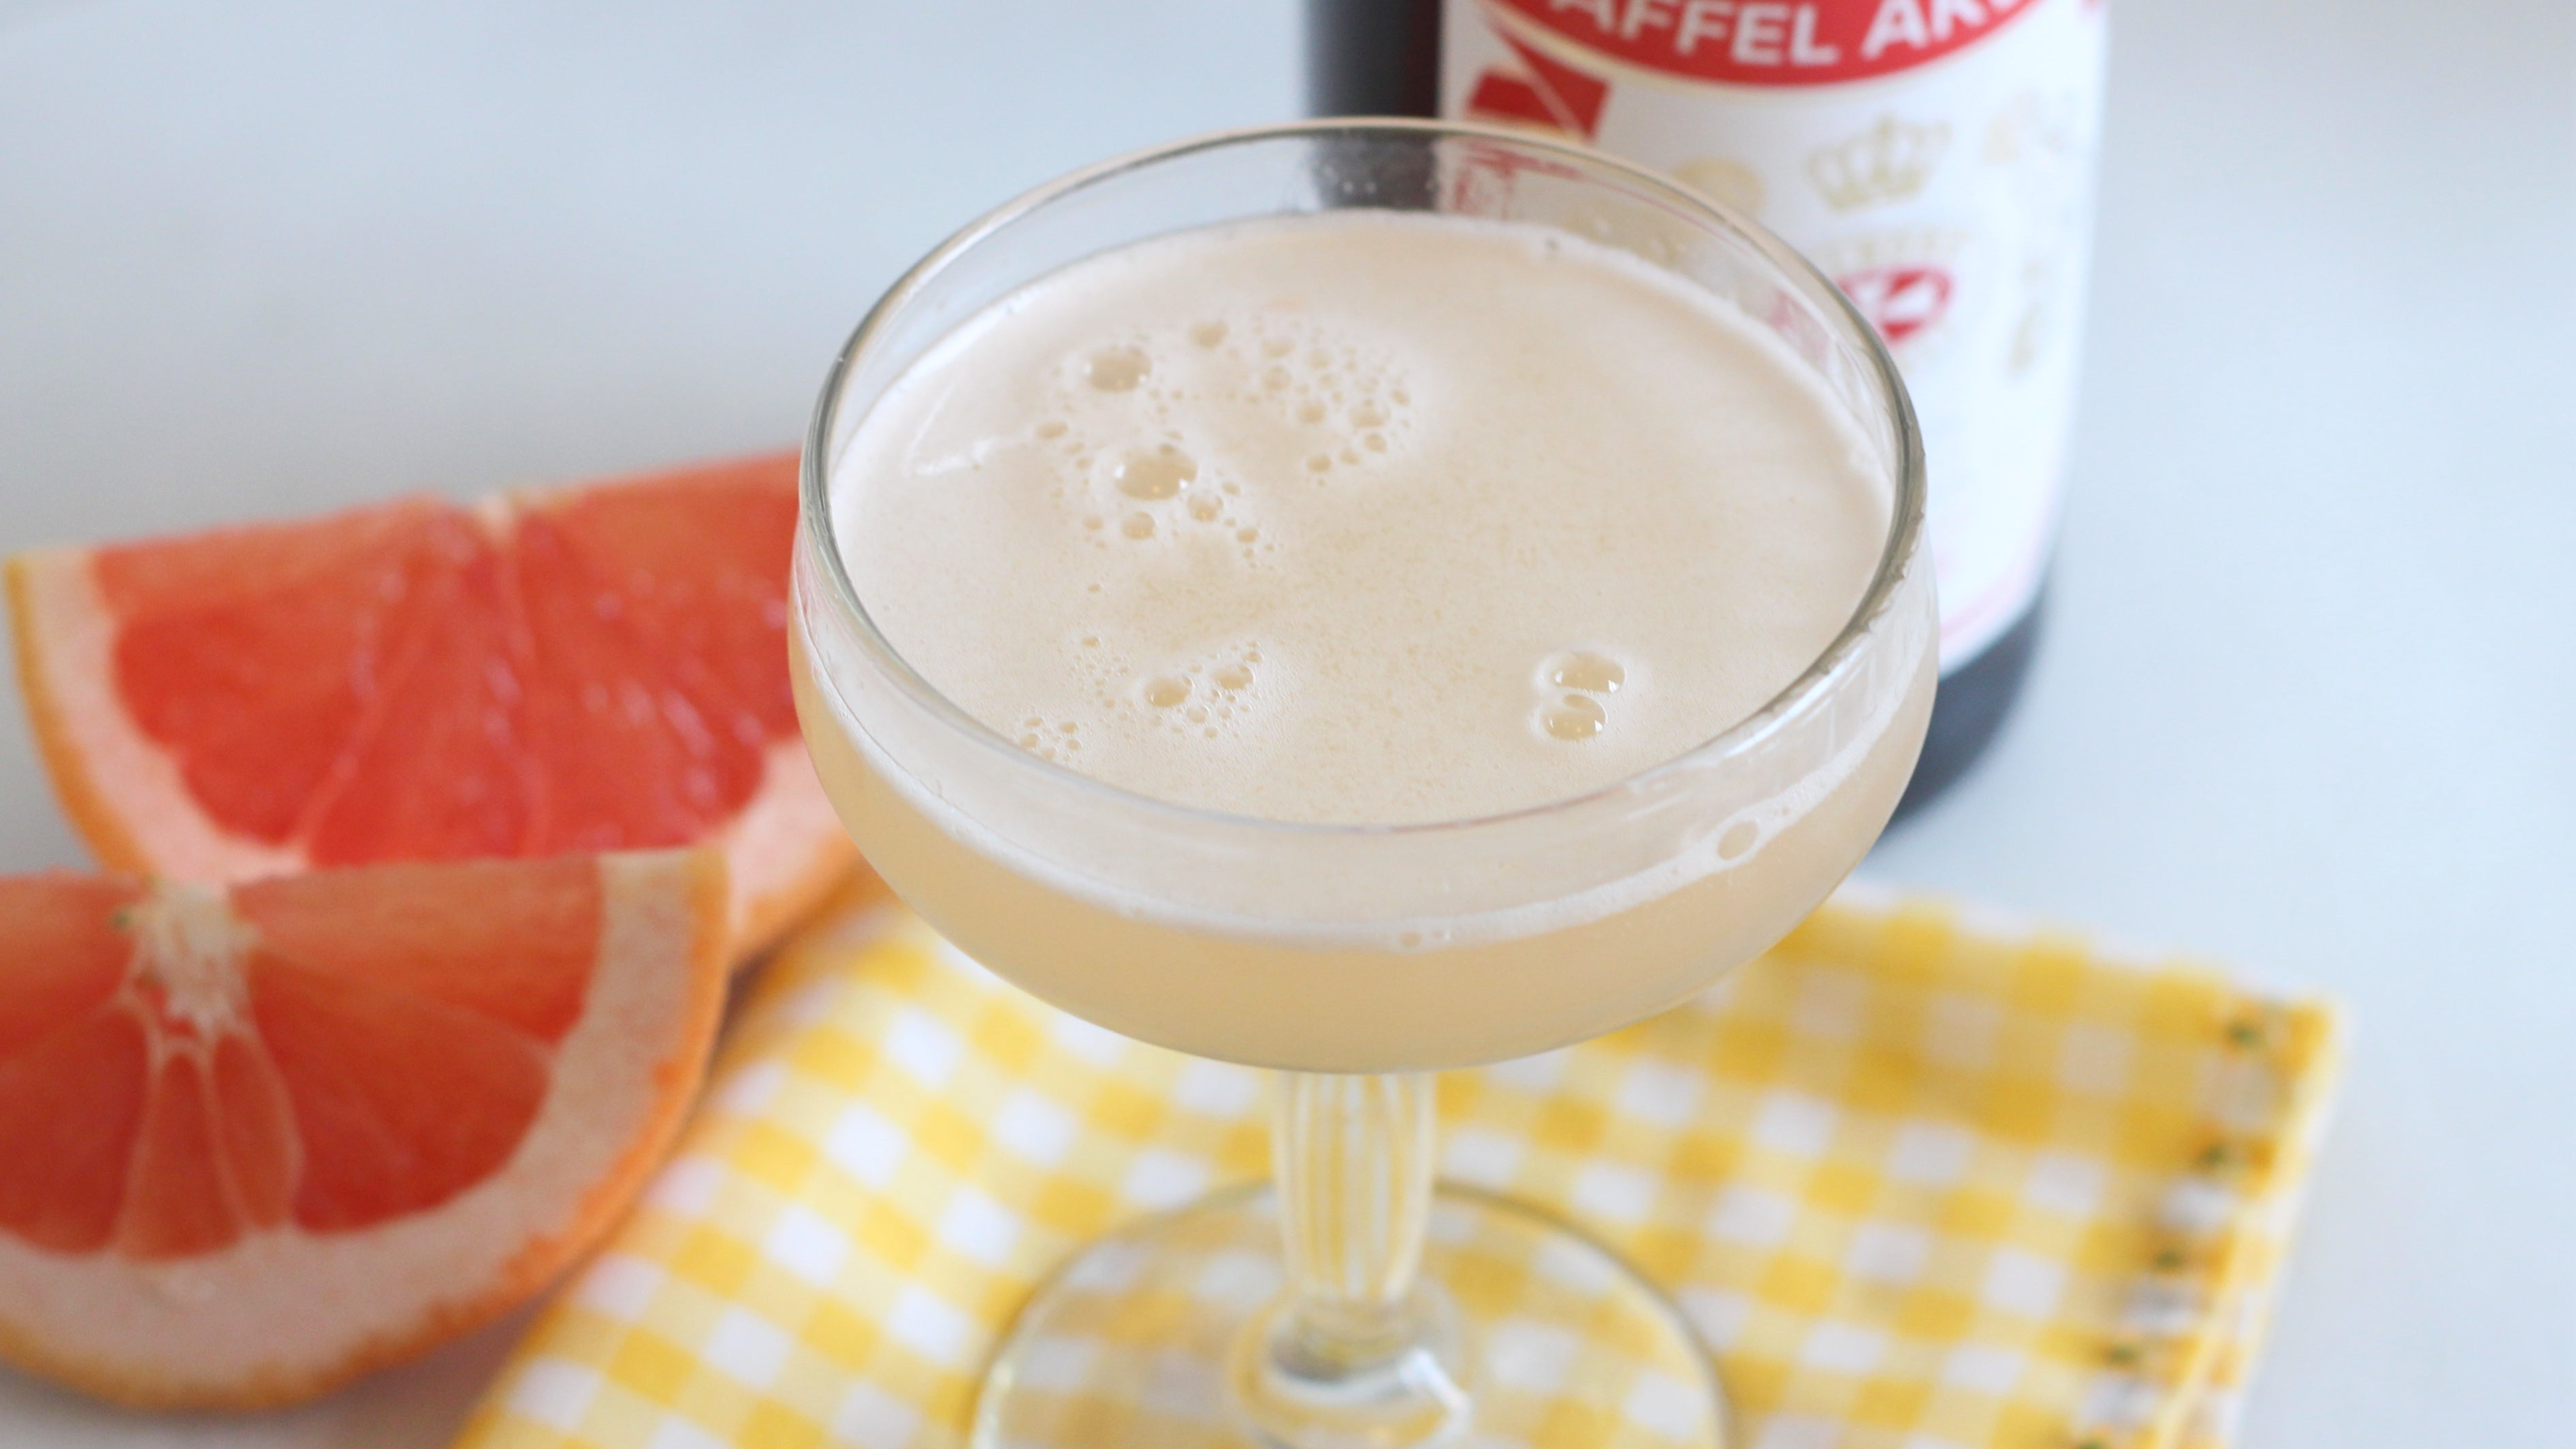 Forget The Winter Solstice With This Summery Cocktail